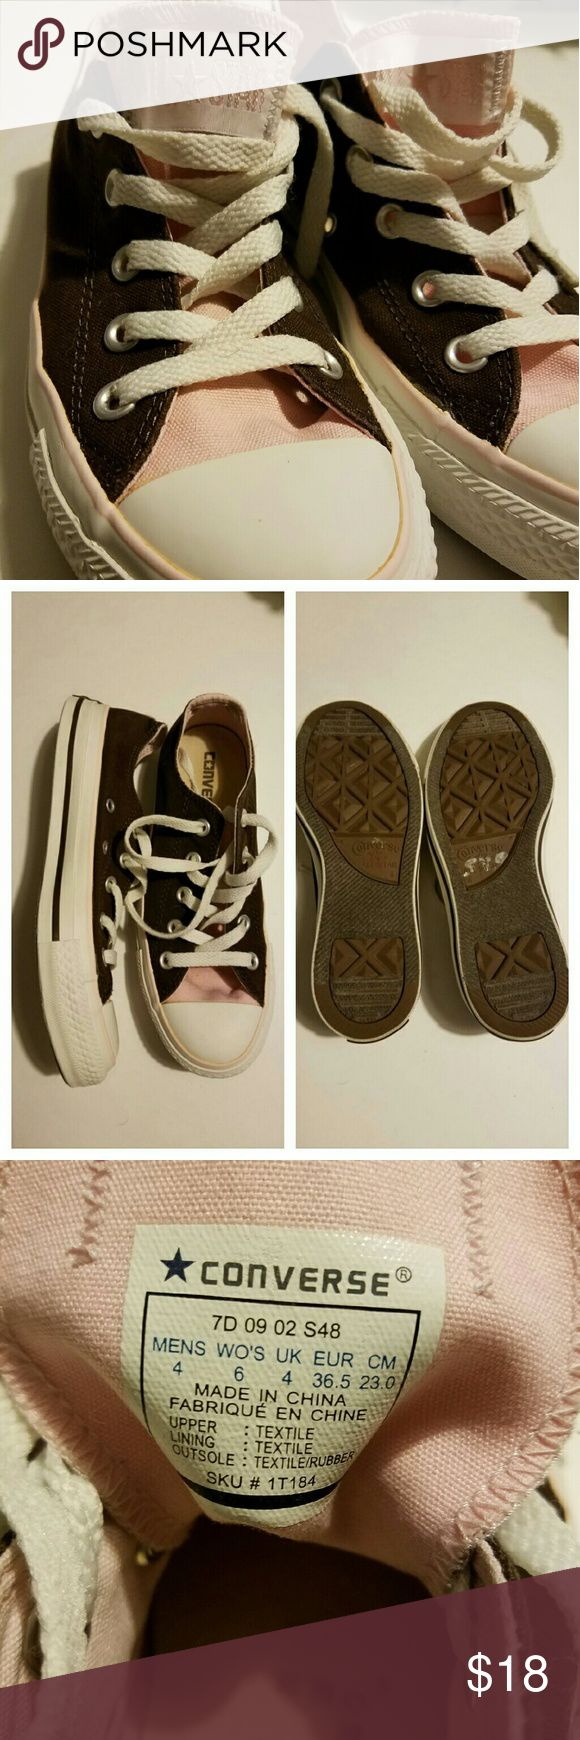 Pink & Brown Converse All Star Soes These cute shoes by converse are two-toned with light pink and brown. Excellent condition. Women's size 6. Converse Shoes Sneakers